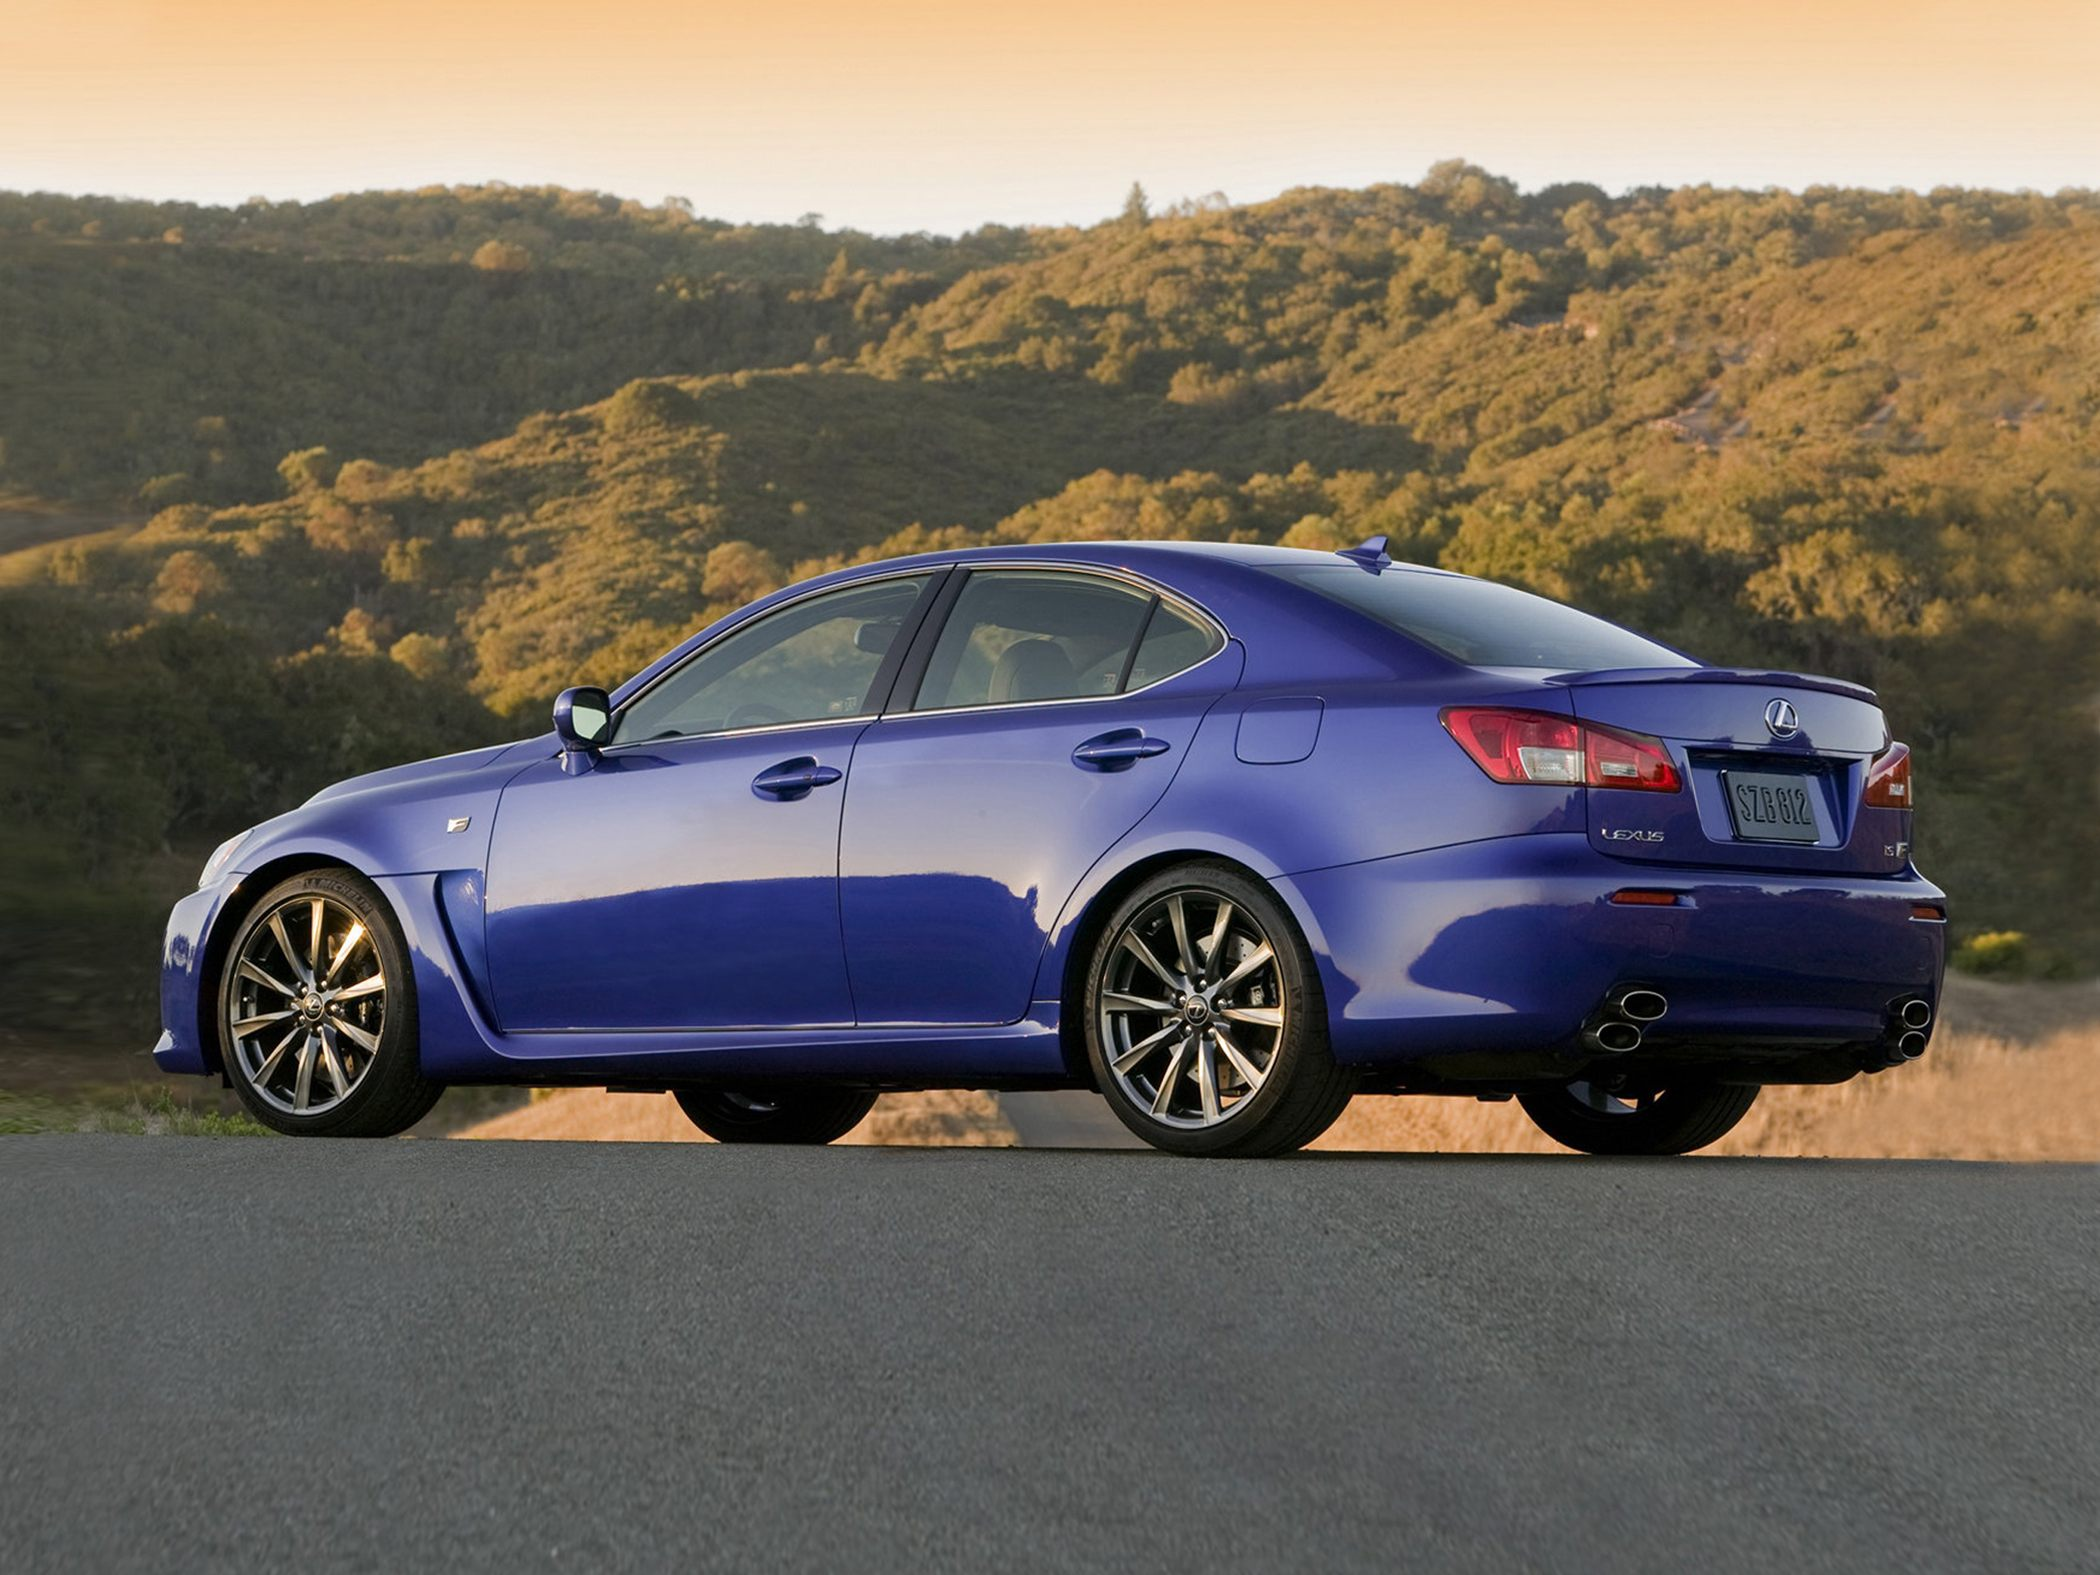 2010 Lexus Is F #9